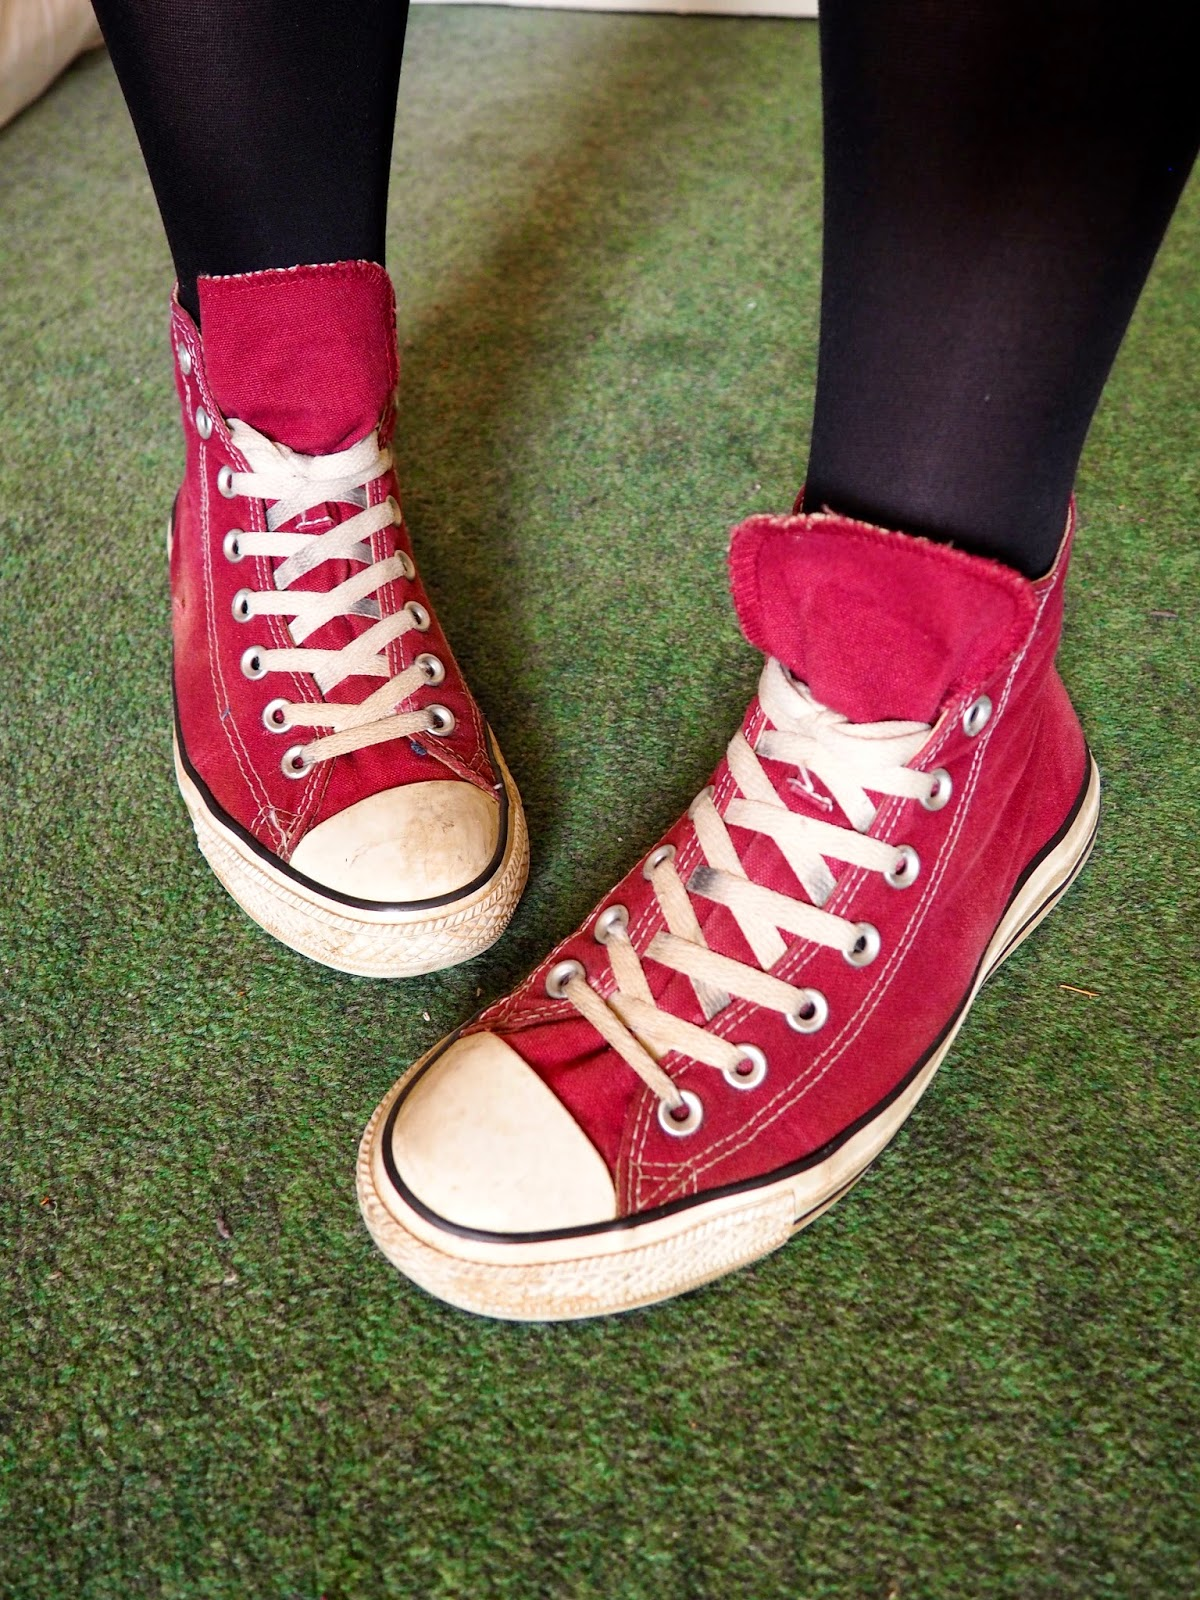 Gig wear outfit details - red burgundy high top Converse sneakers